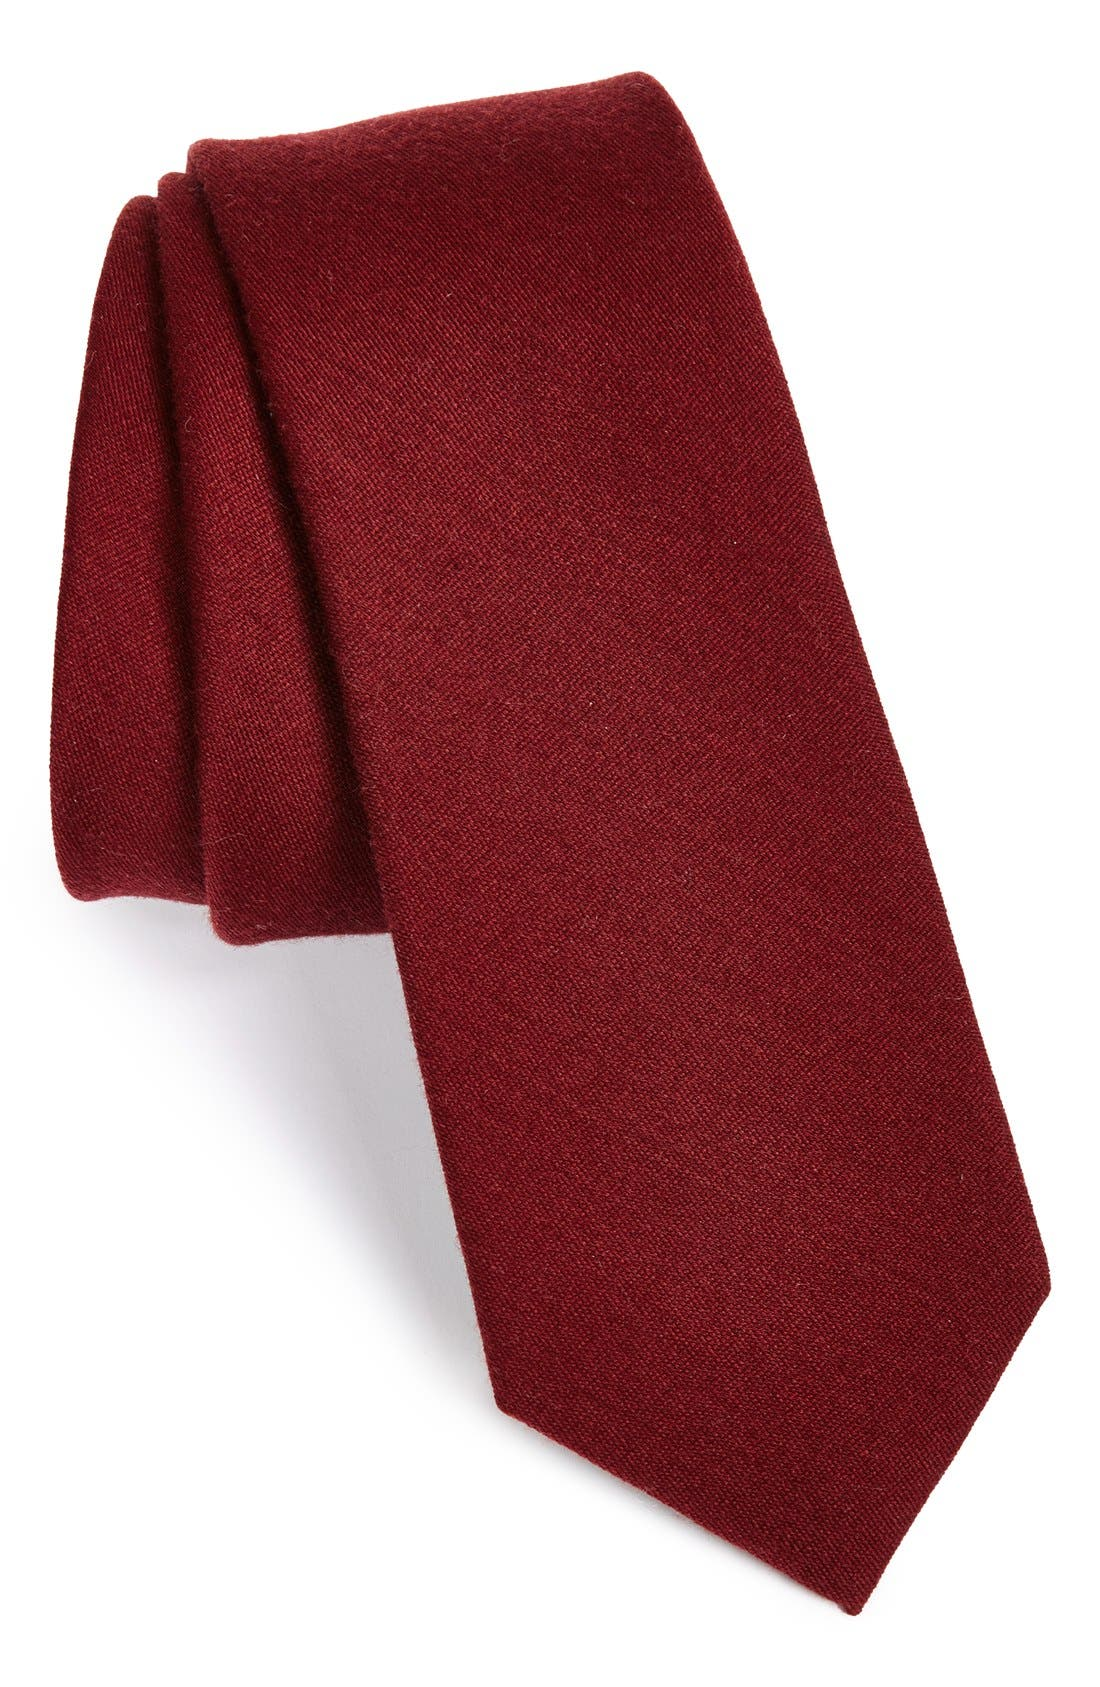 The Tie Bar Wool & Silk Solid Tie